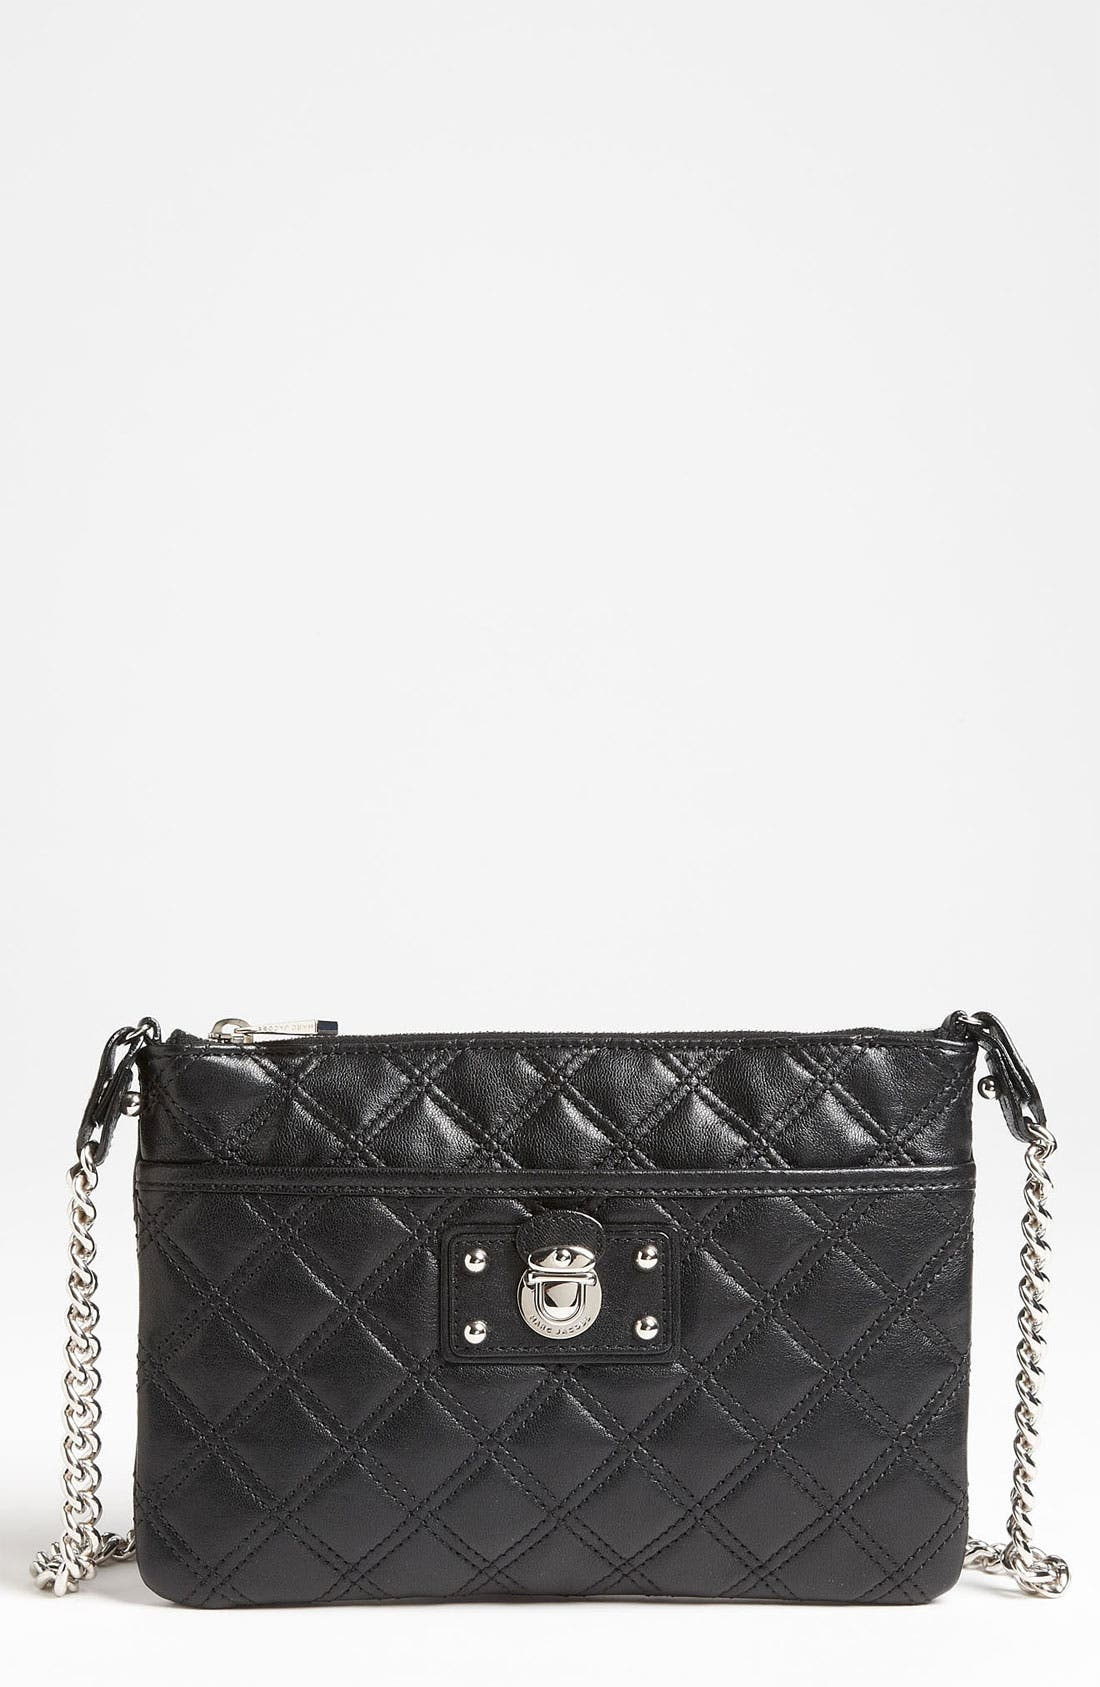 Main Image - MARC JACOBS 'Murray' Leather Crossbody Bag